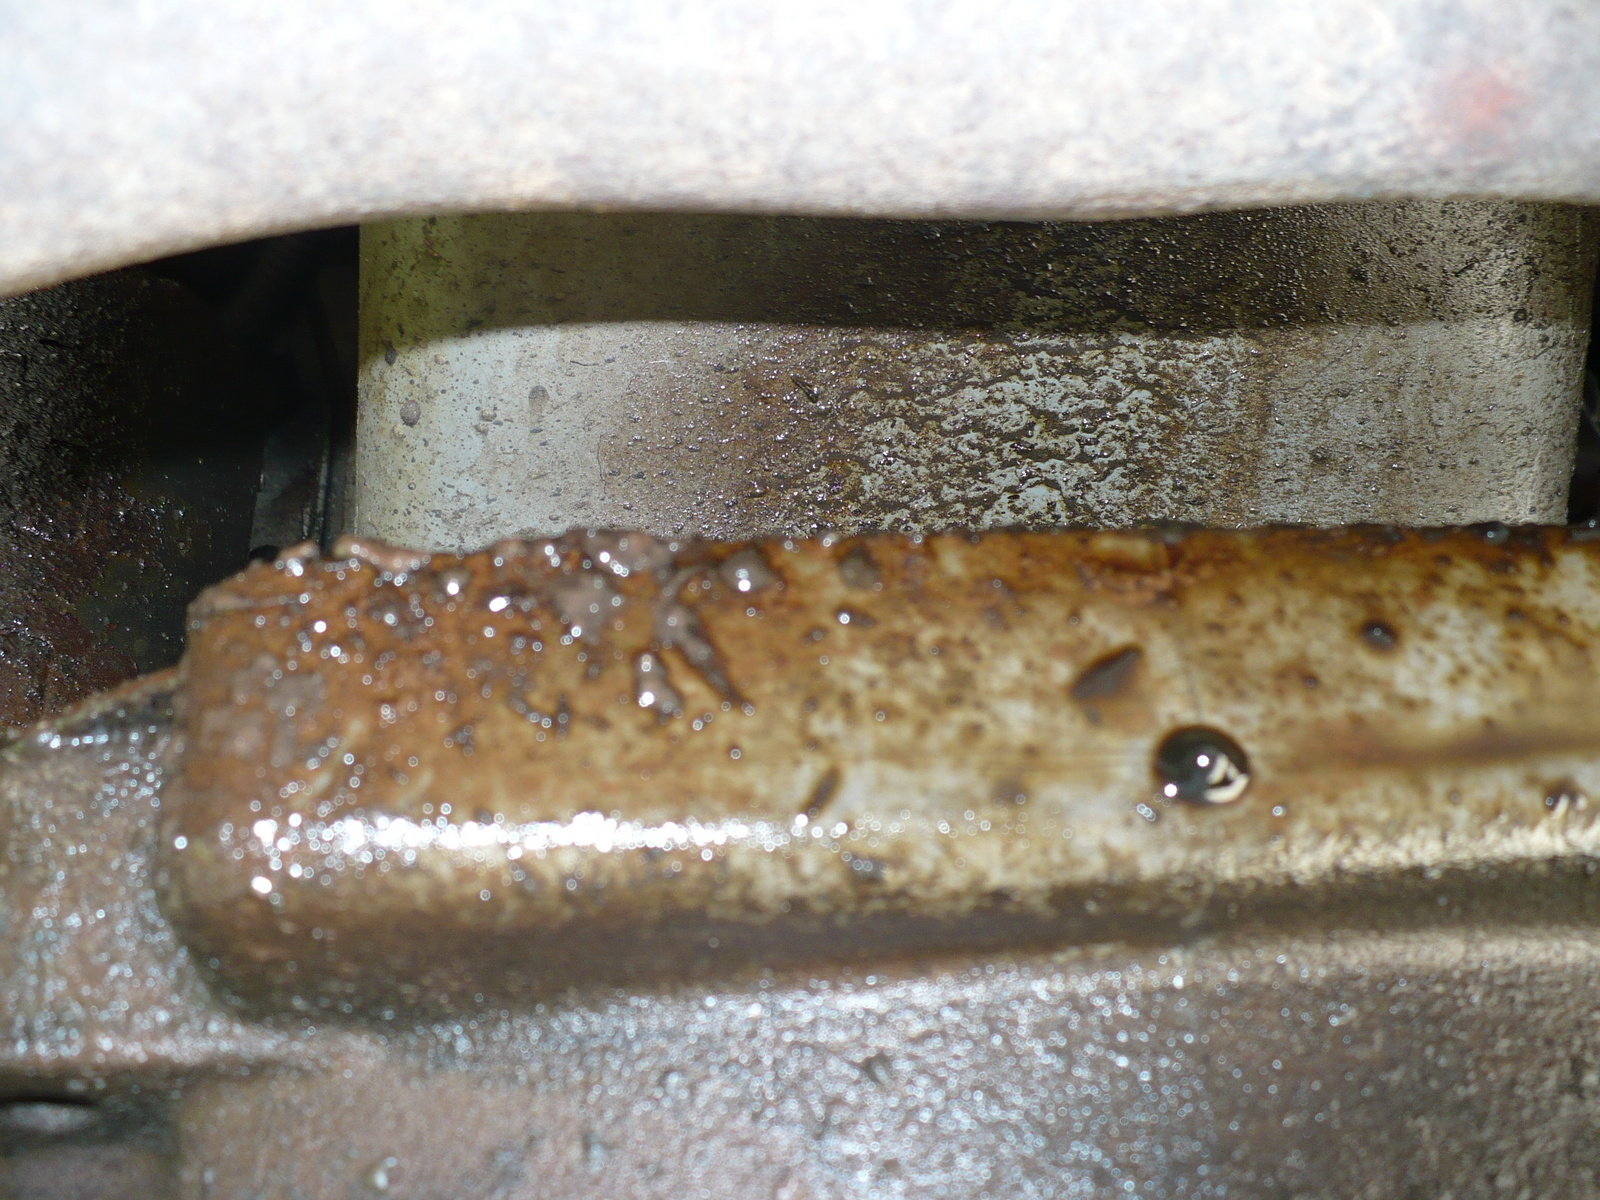 Ford F-250 Questions - Where could oil be leaking? - CarGurus